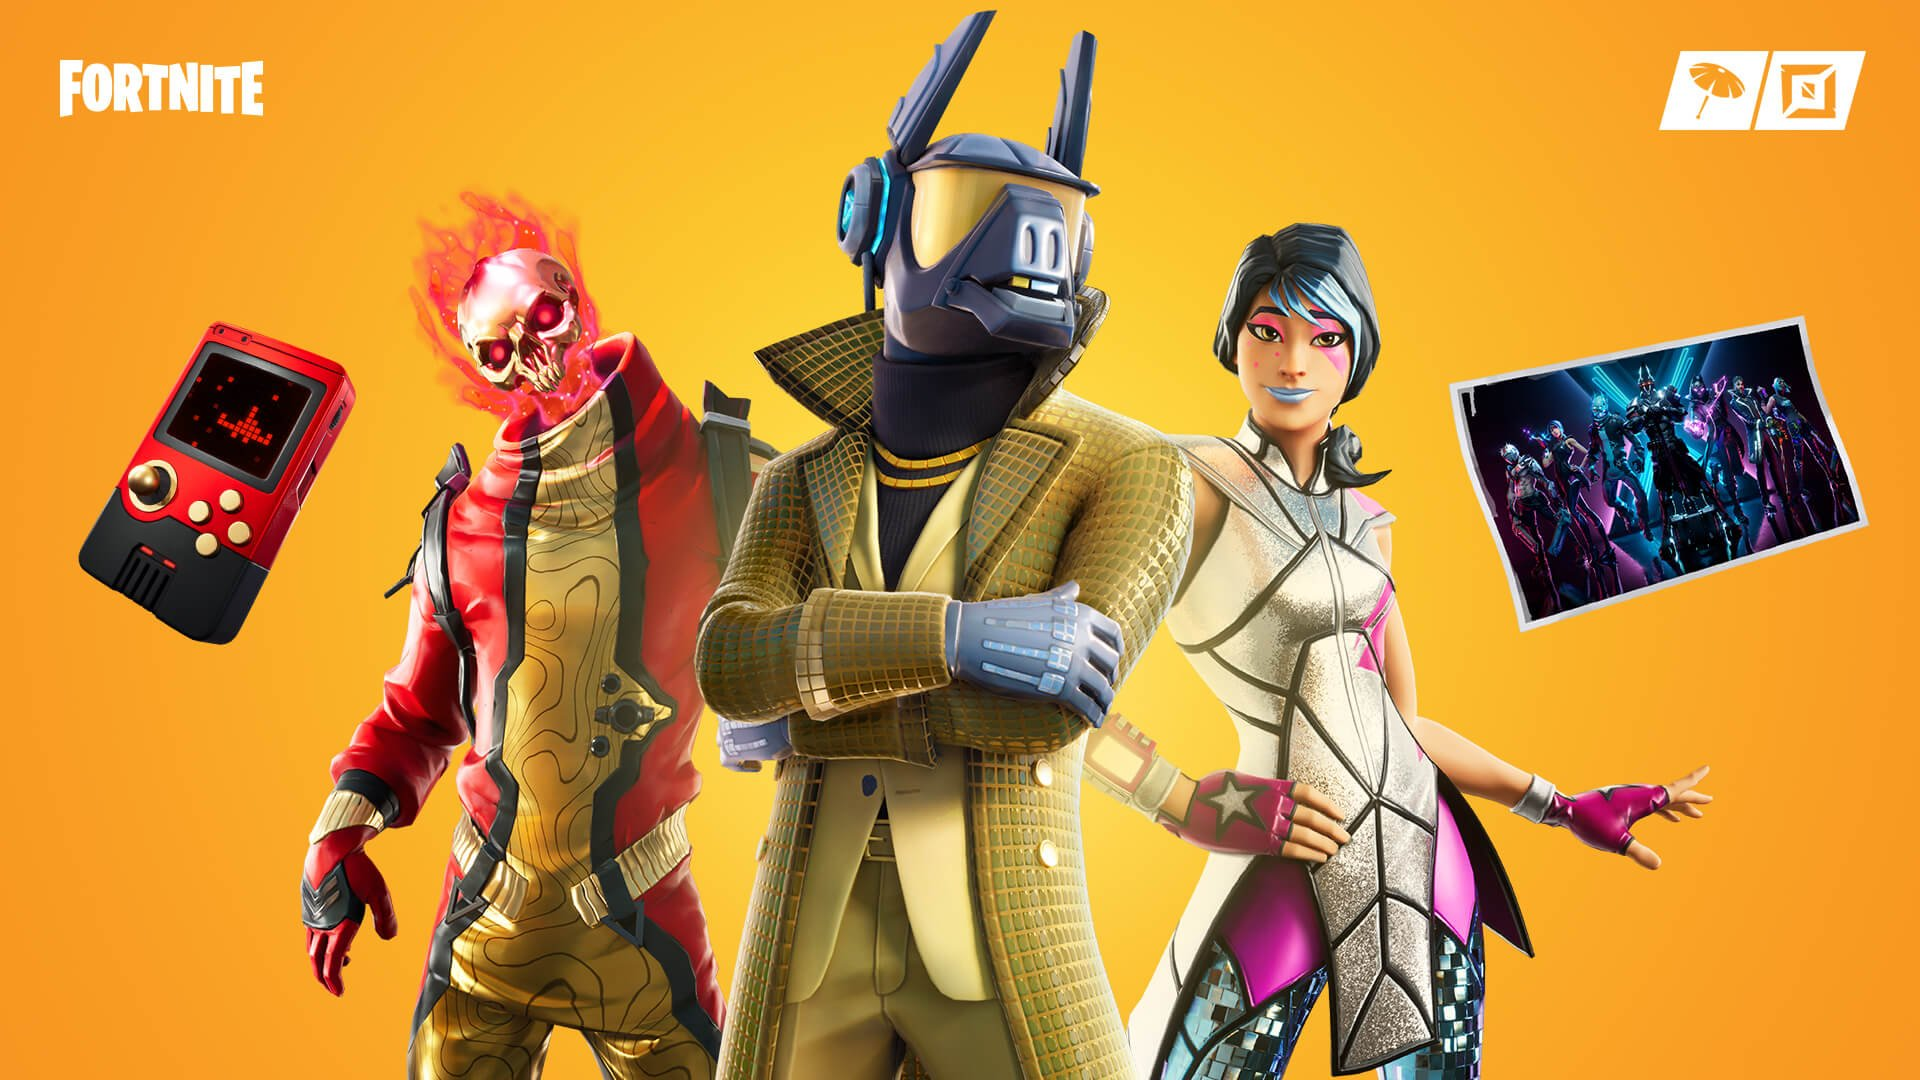 A Fortnite skin for a character with a suit and a Daft Punk-esque helmet